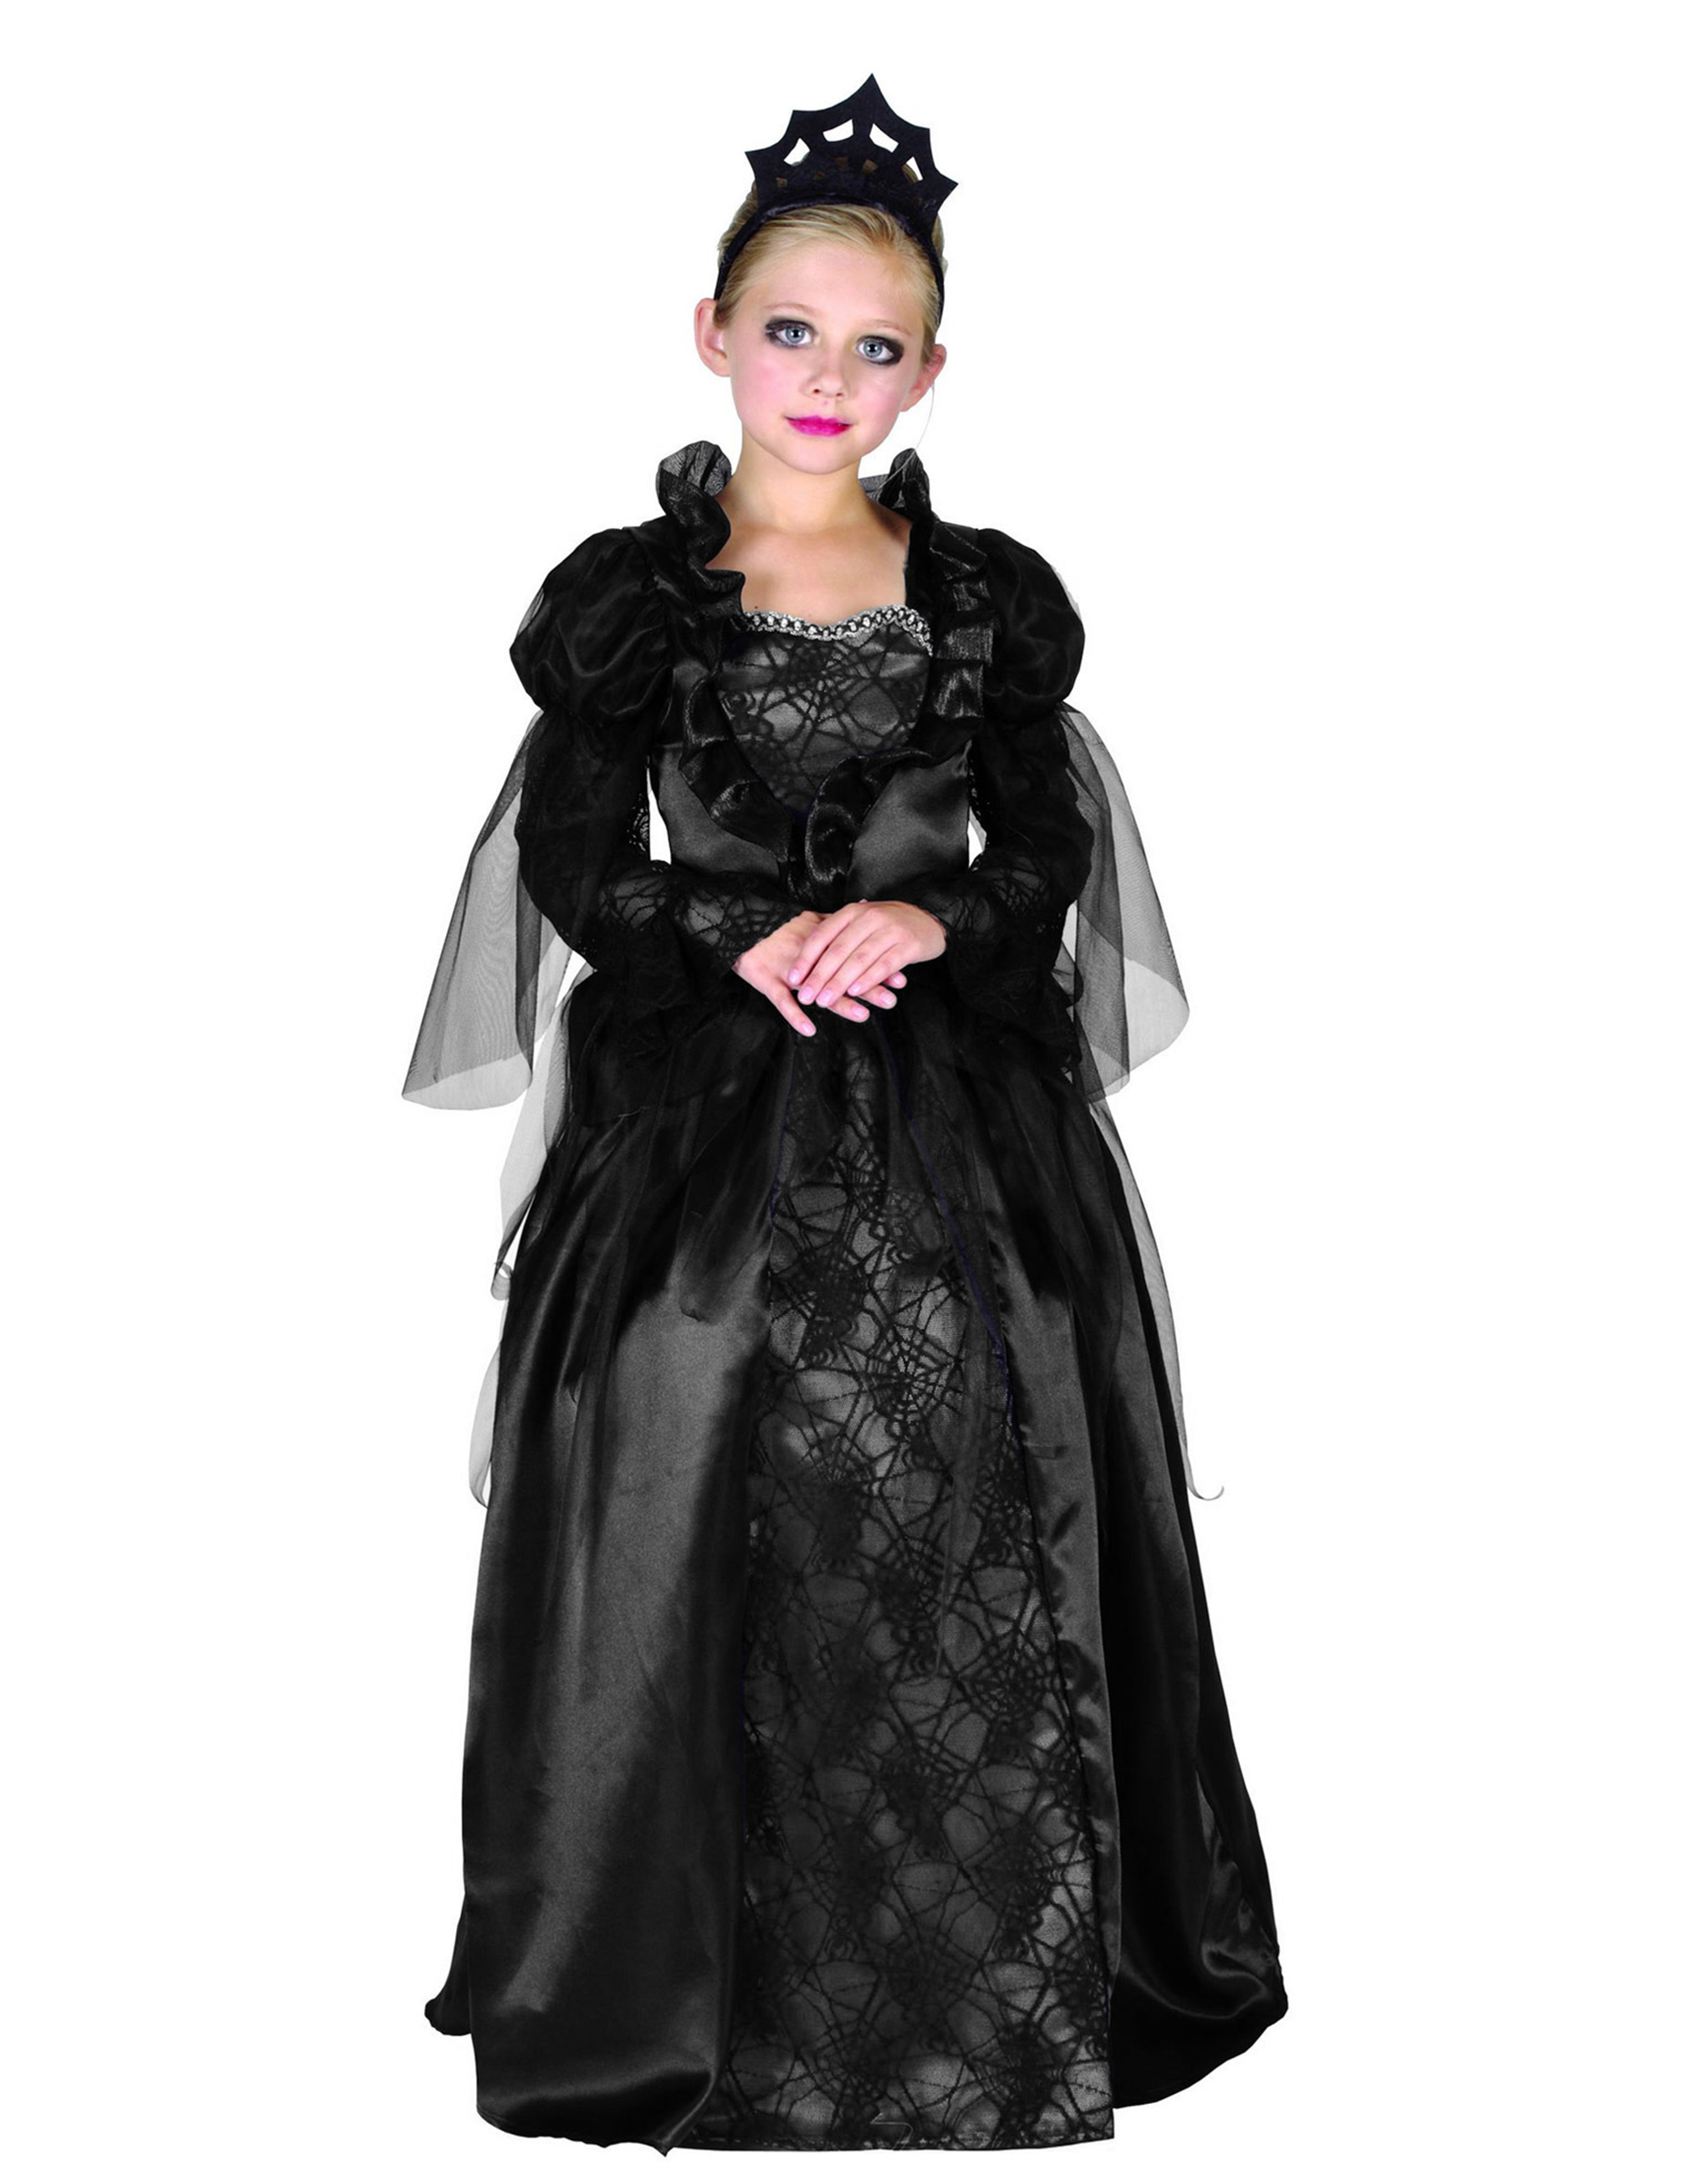 Vampire countess costume for girls